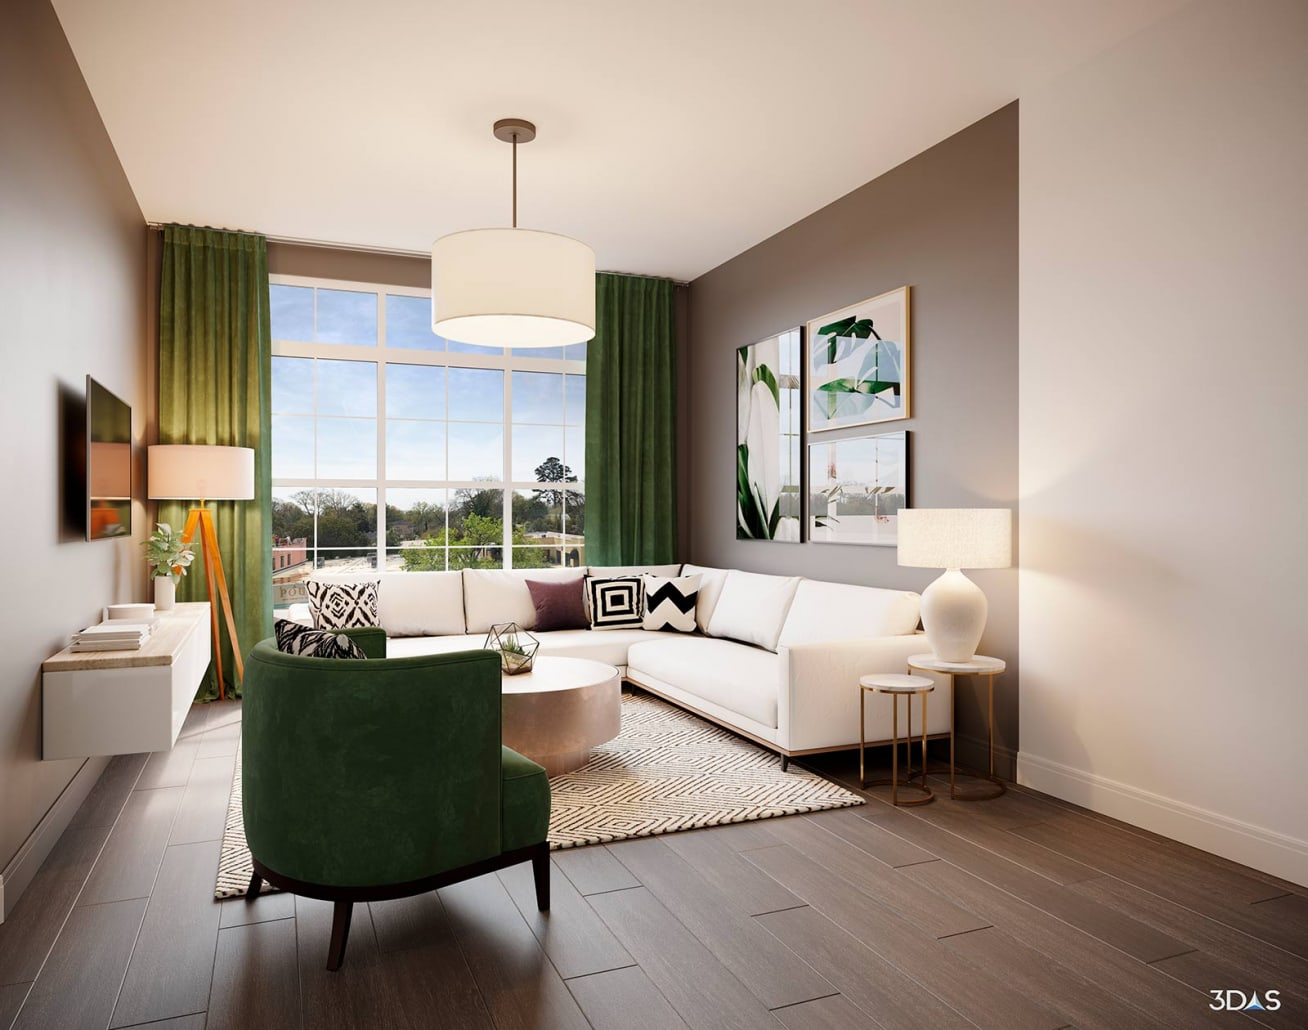 Living Room 3D Rendering. Devine Maple Residences Located in Columbia, South Carolina